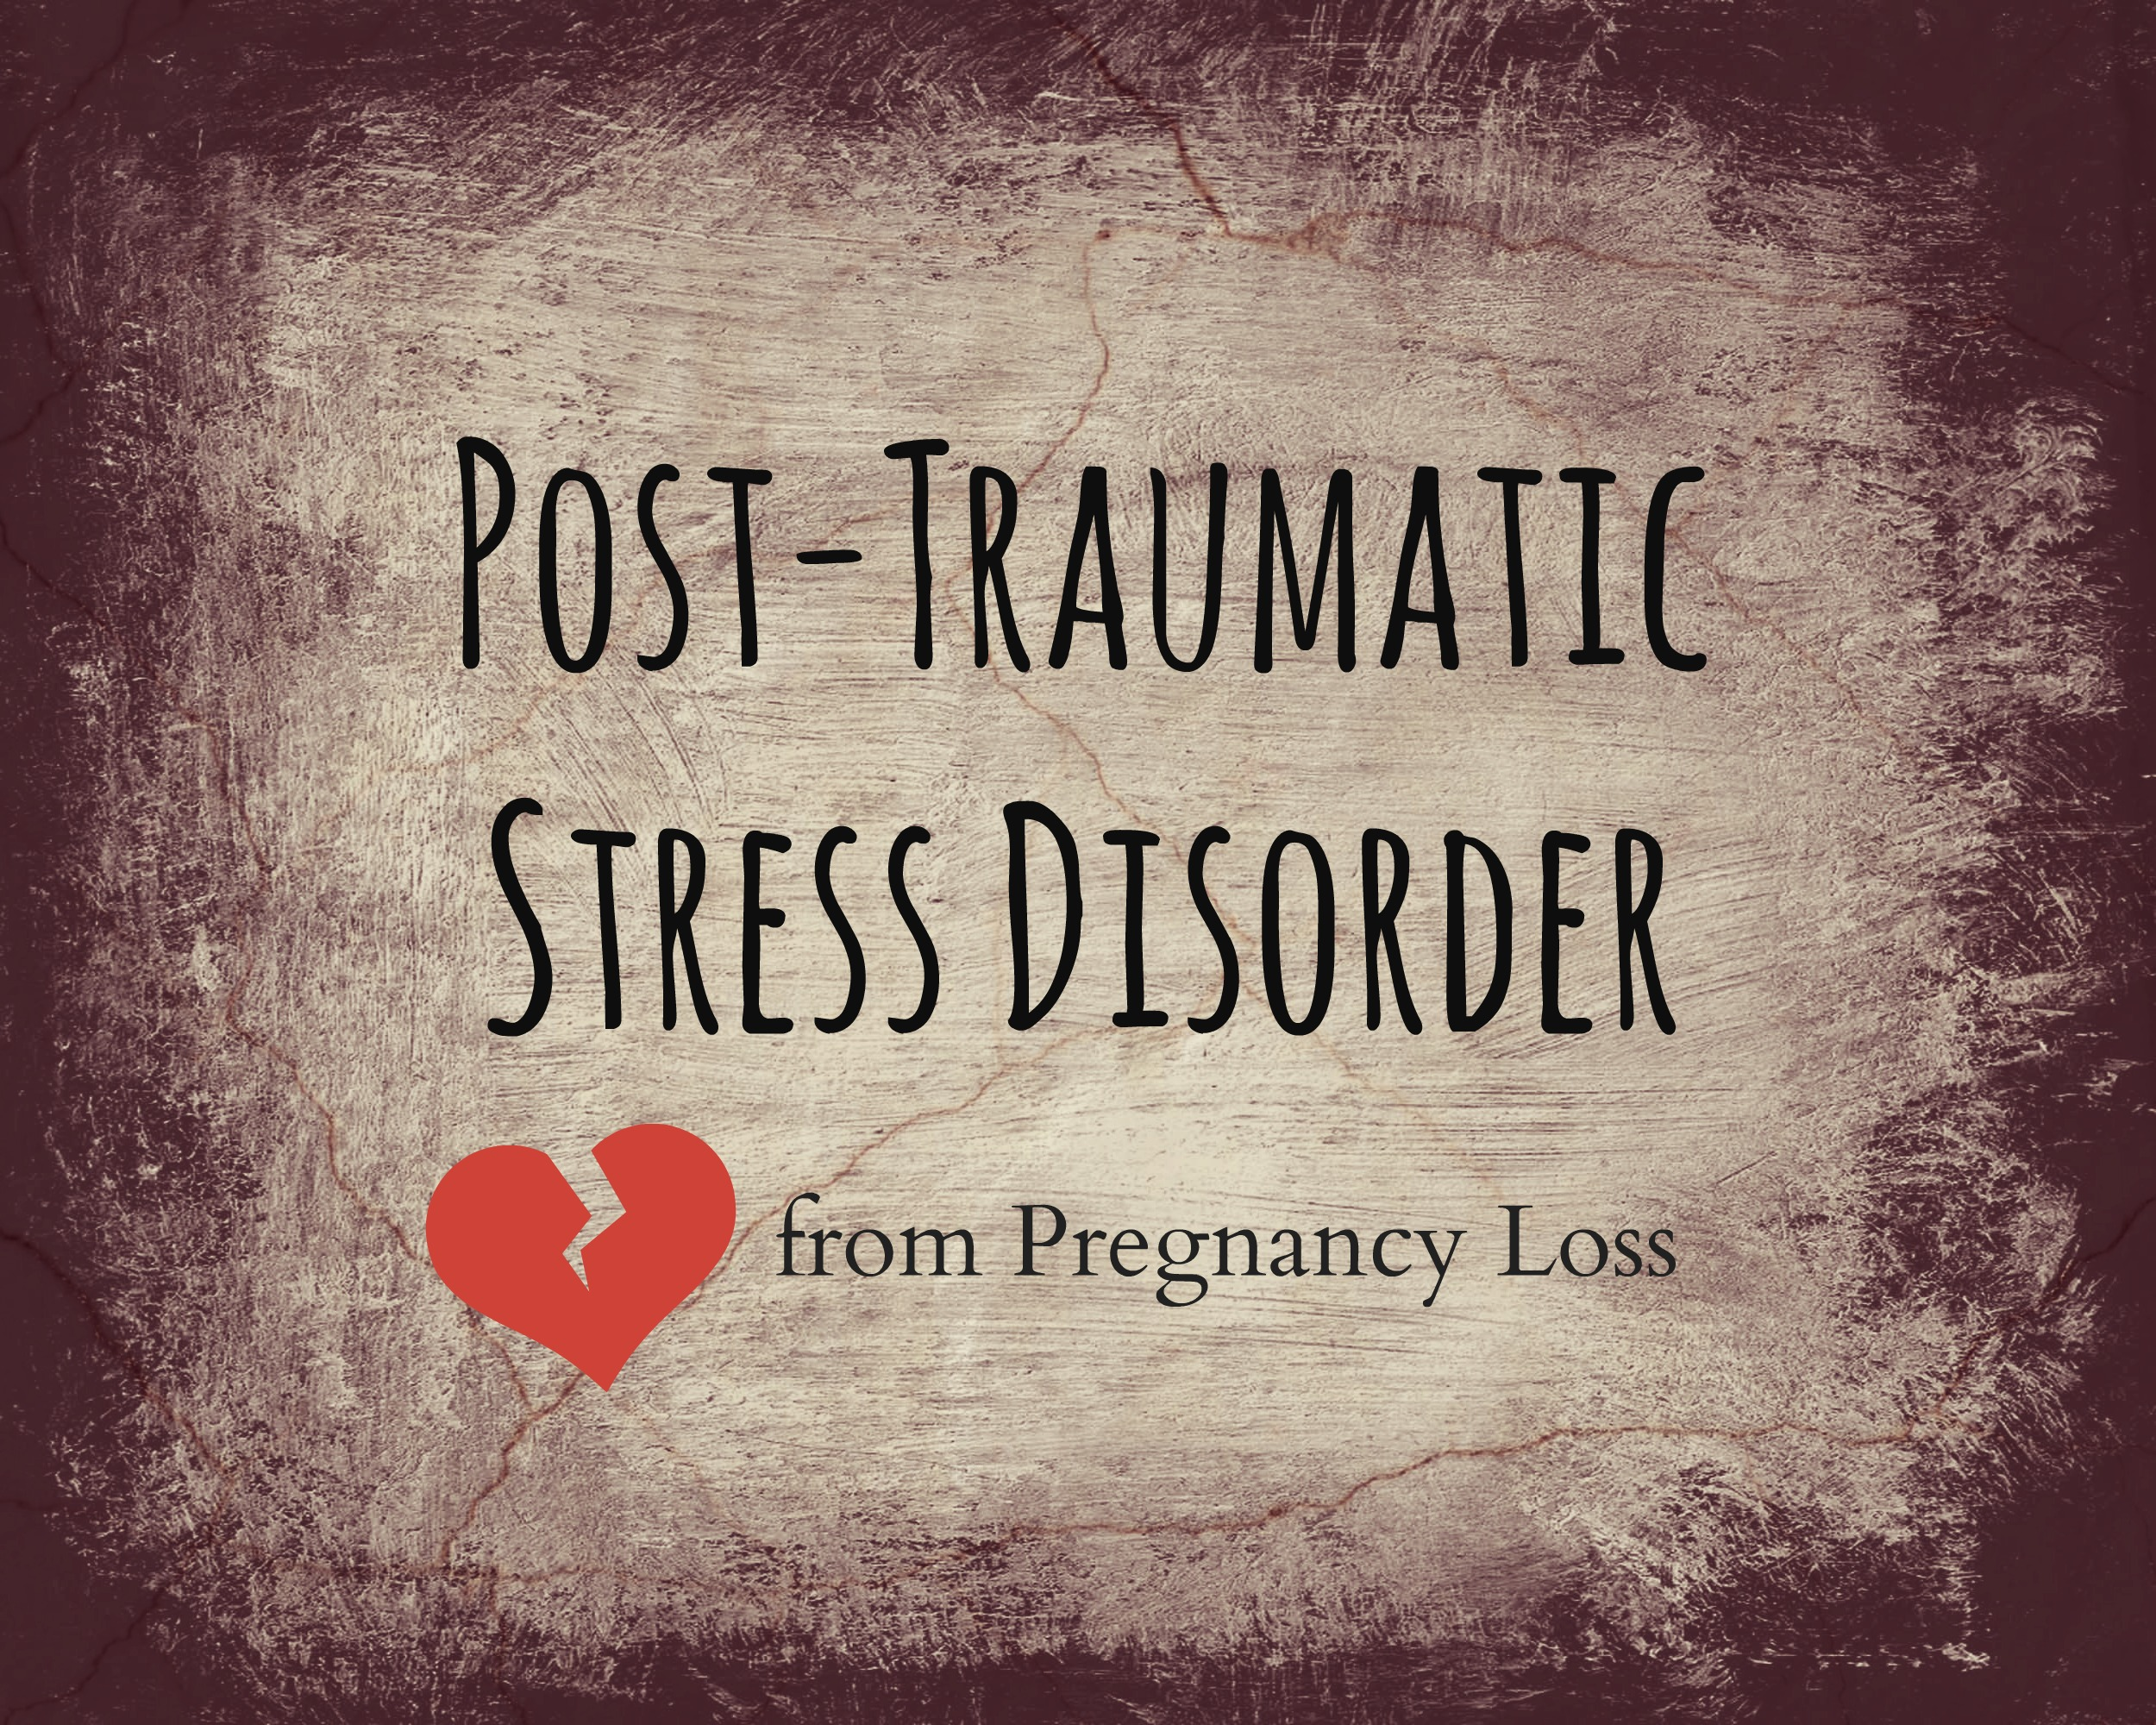 mental-health-ptsd-return to zero-miscarriage-stillbirth-pregnancy loss